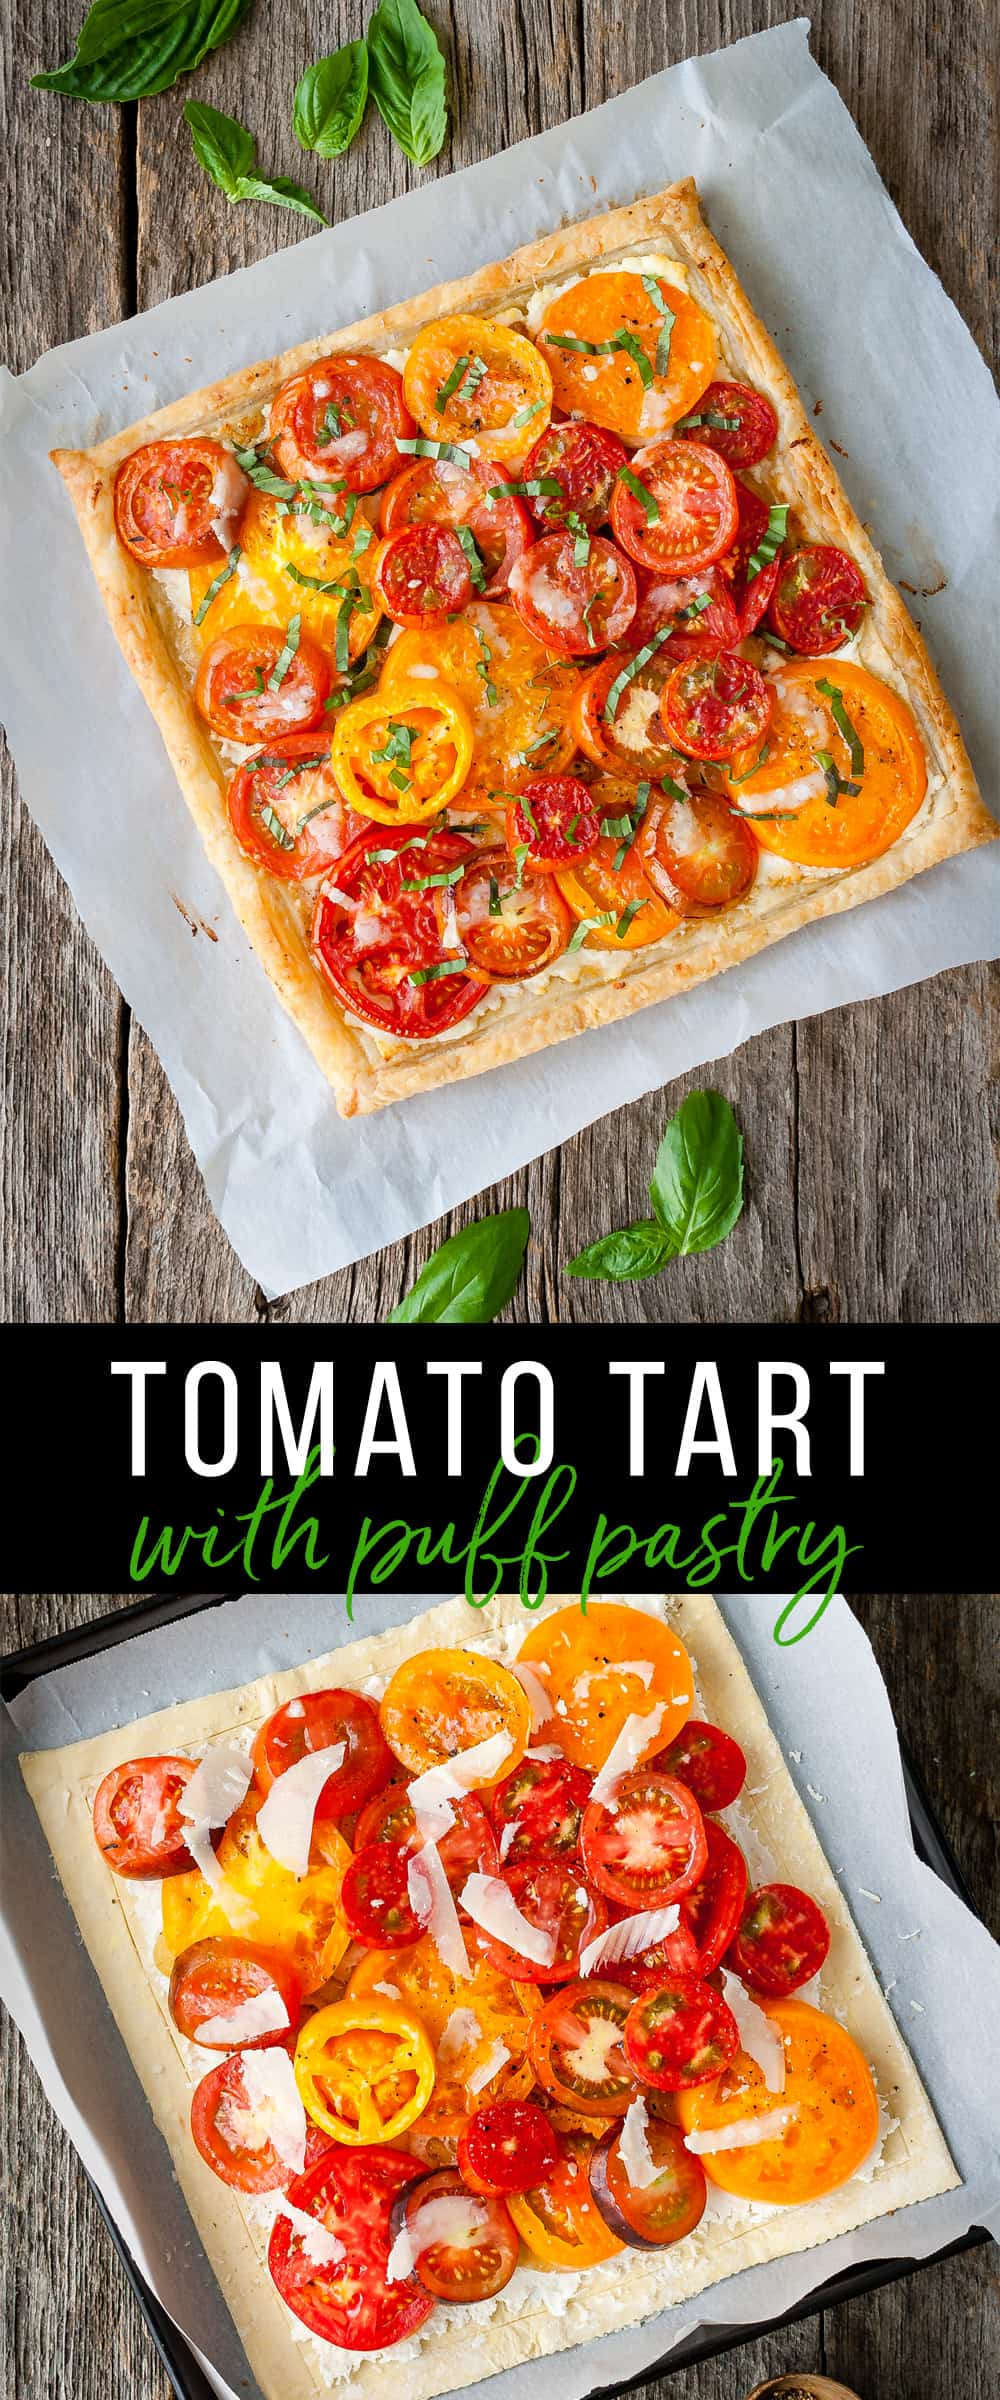 Collage of tomato tart with puff pastry before and after baking.